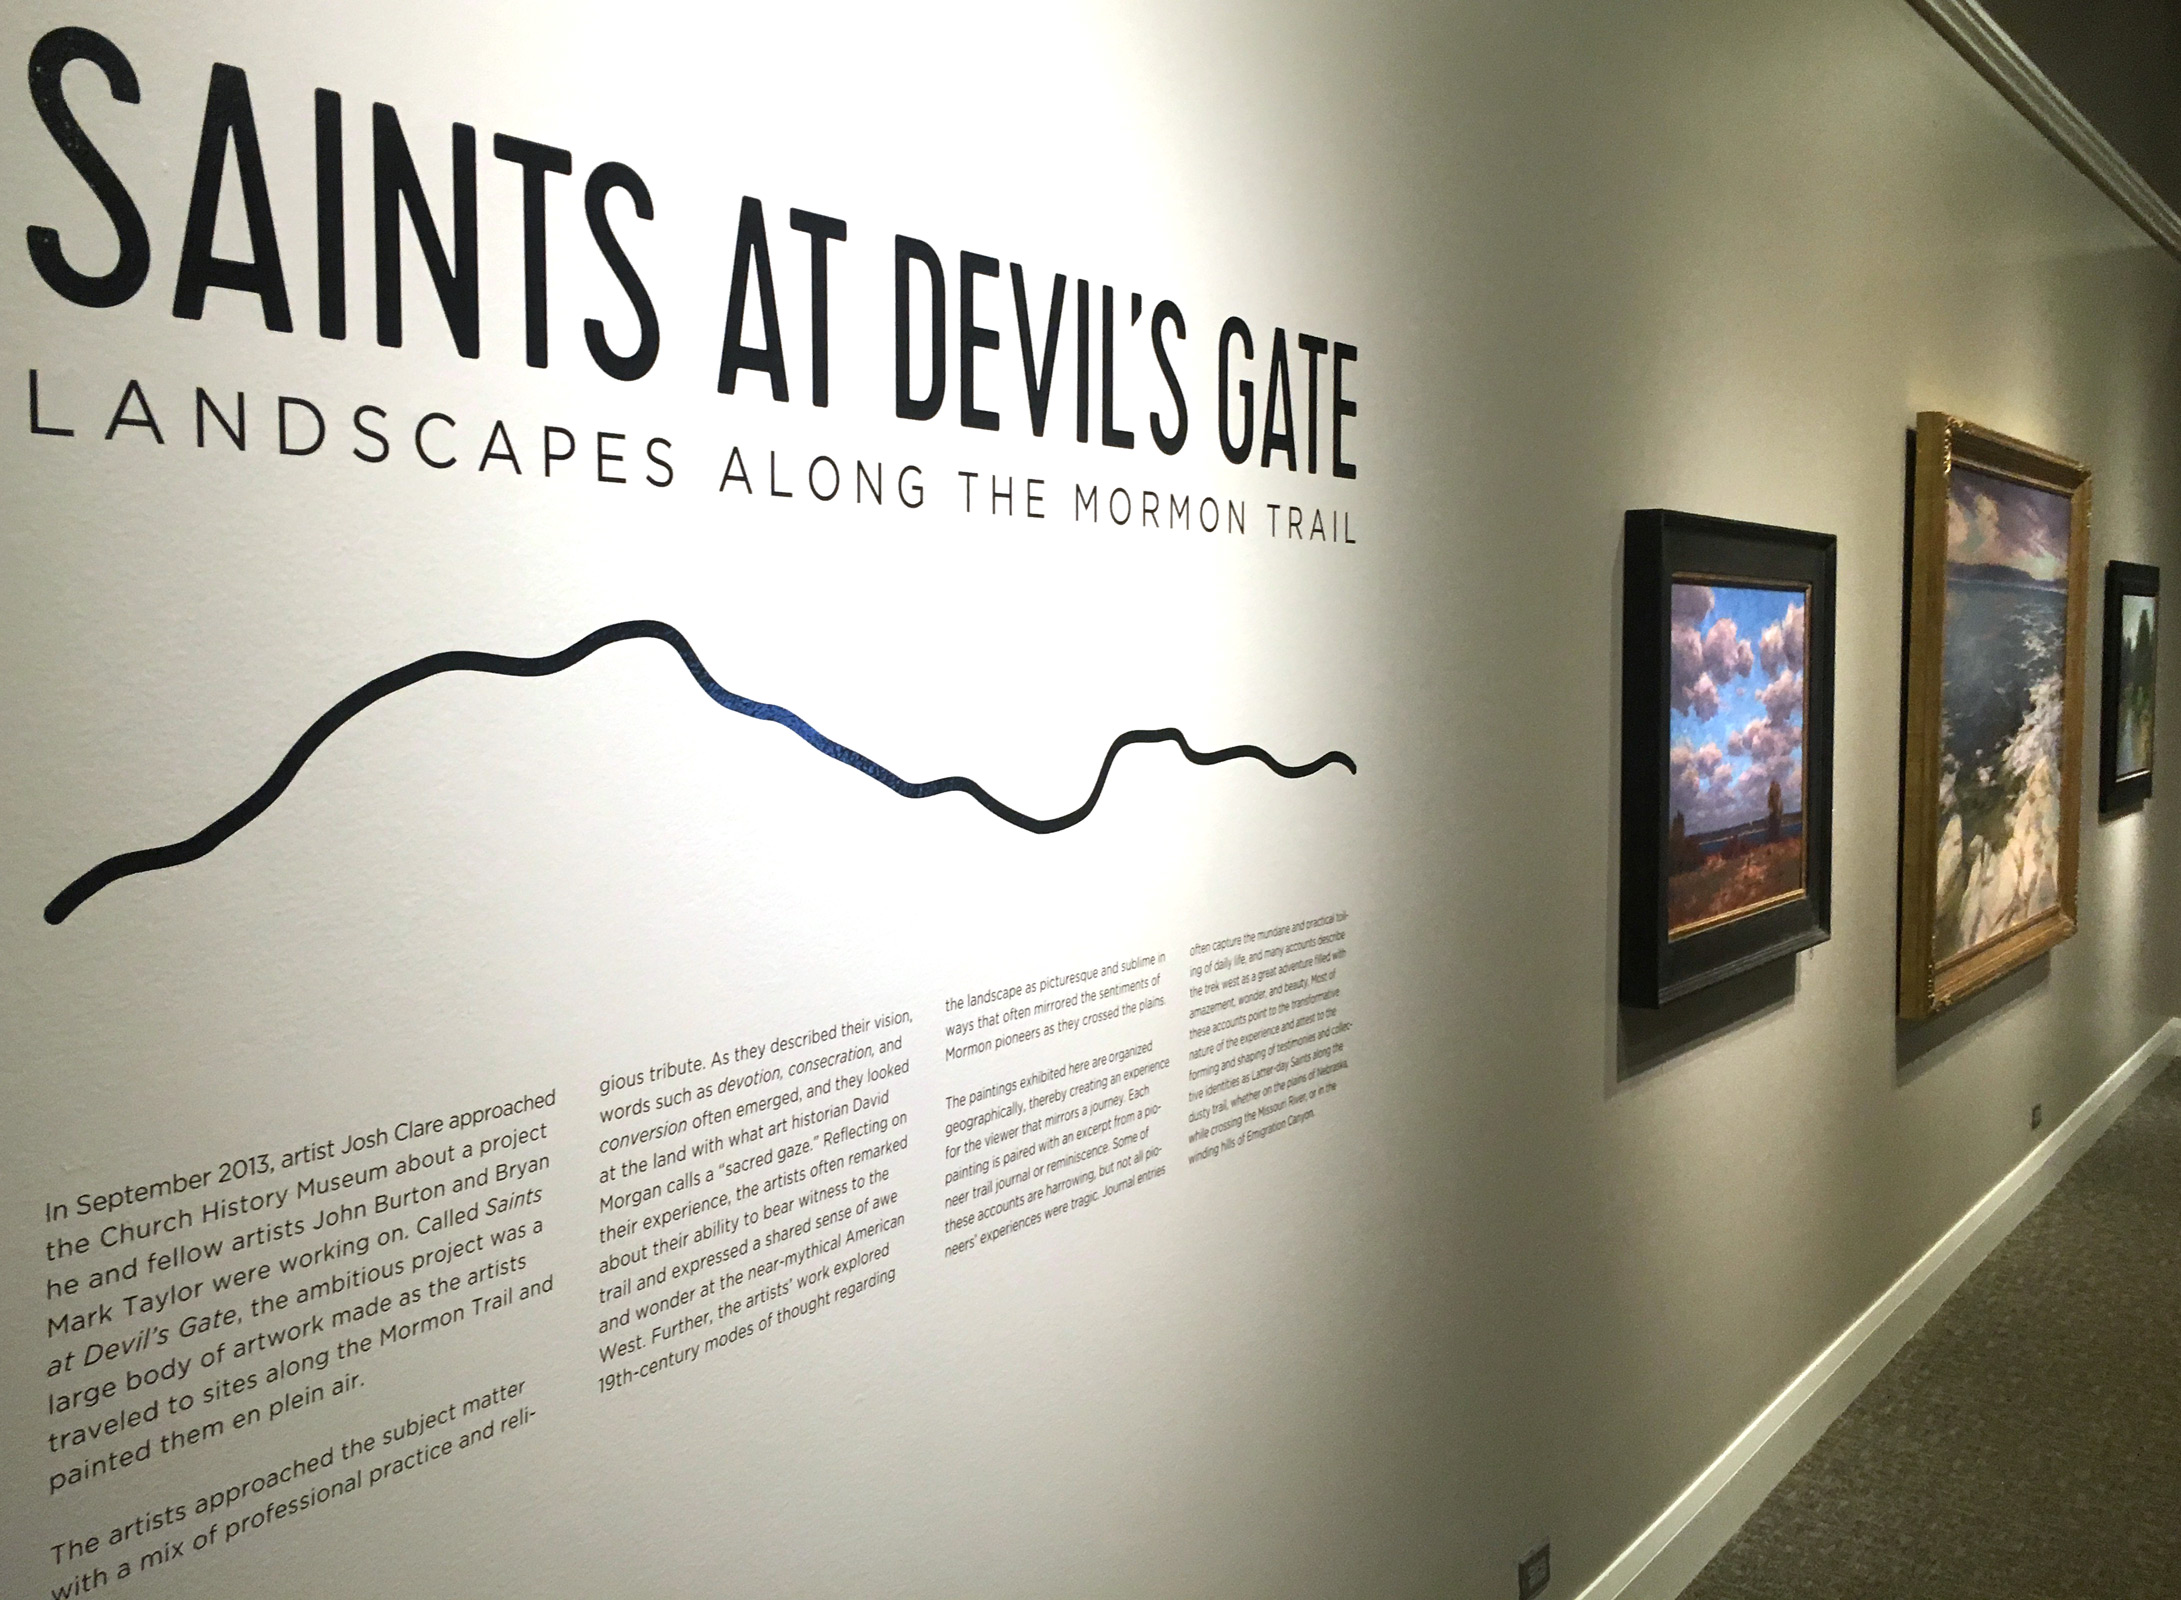 An introduction to the Saint's at the Devil's Gate Exhibit at the Church History Museum